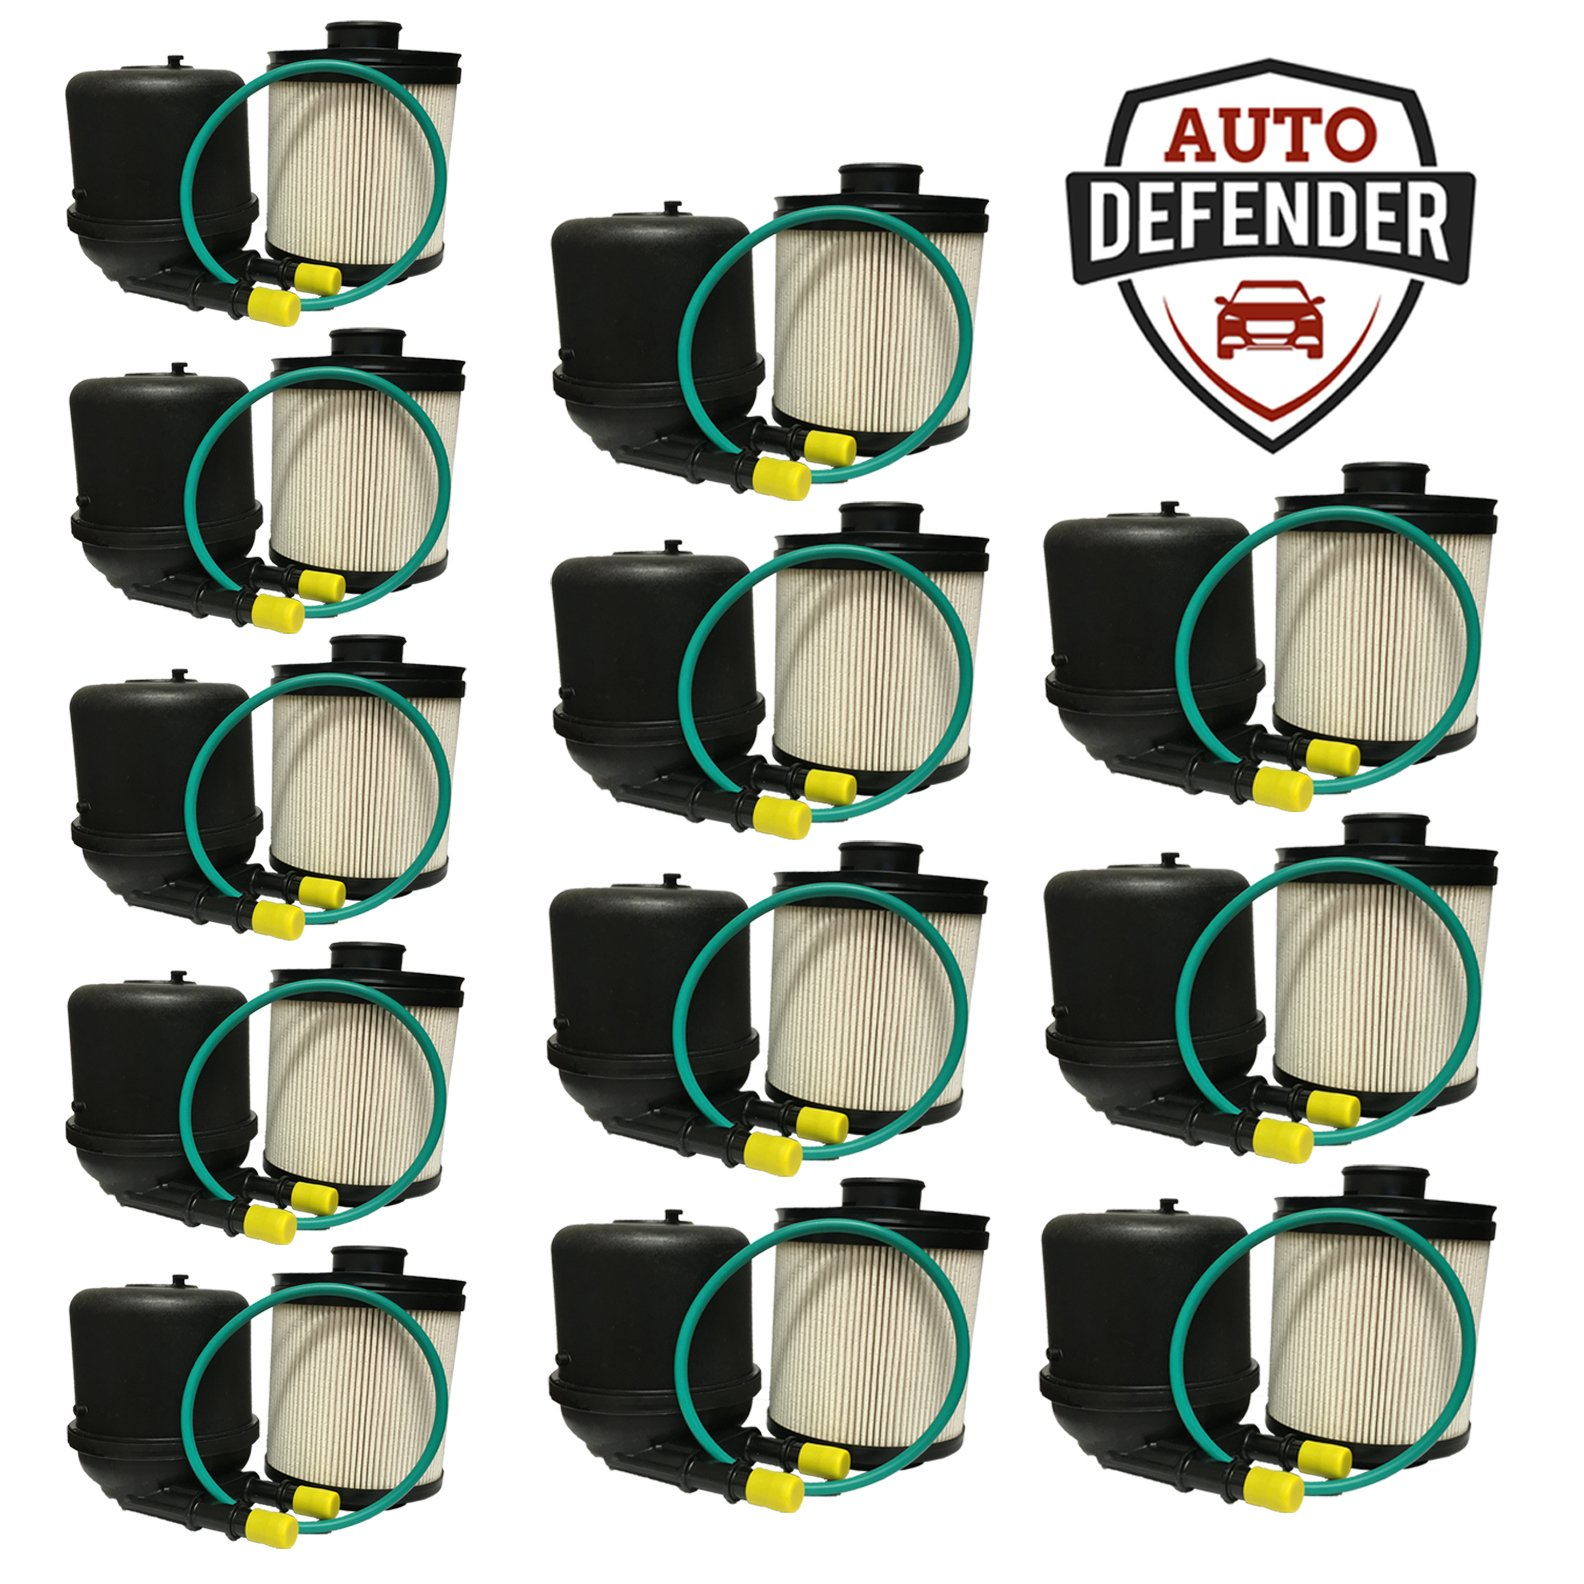 Auto Defender DF4615-AD Fuel Filter (12) by Auto Defender